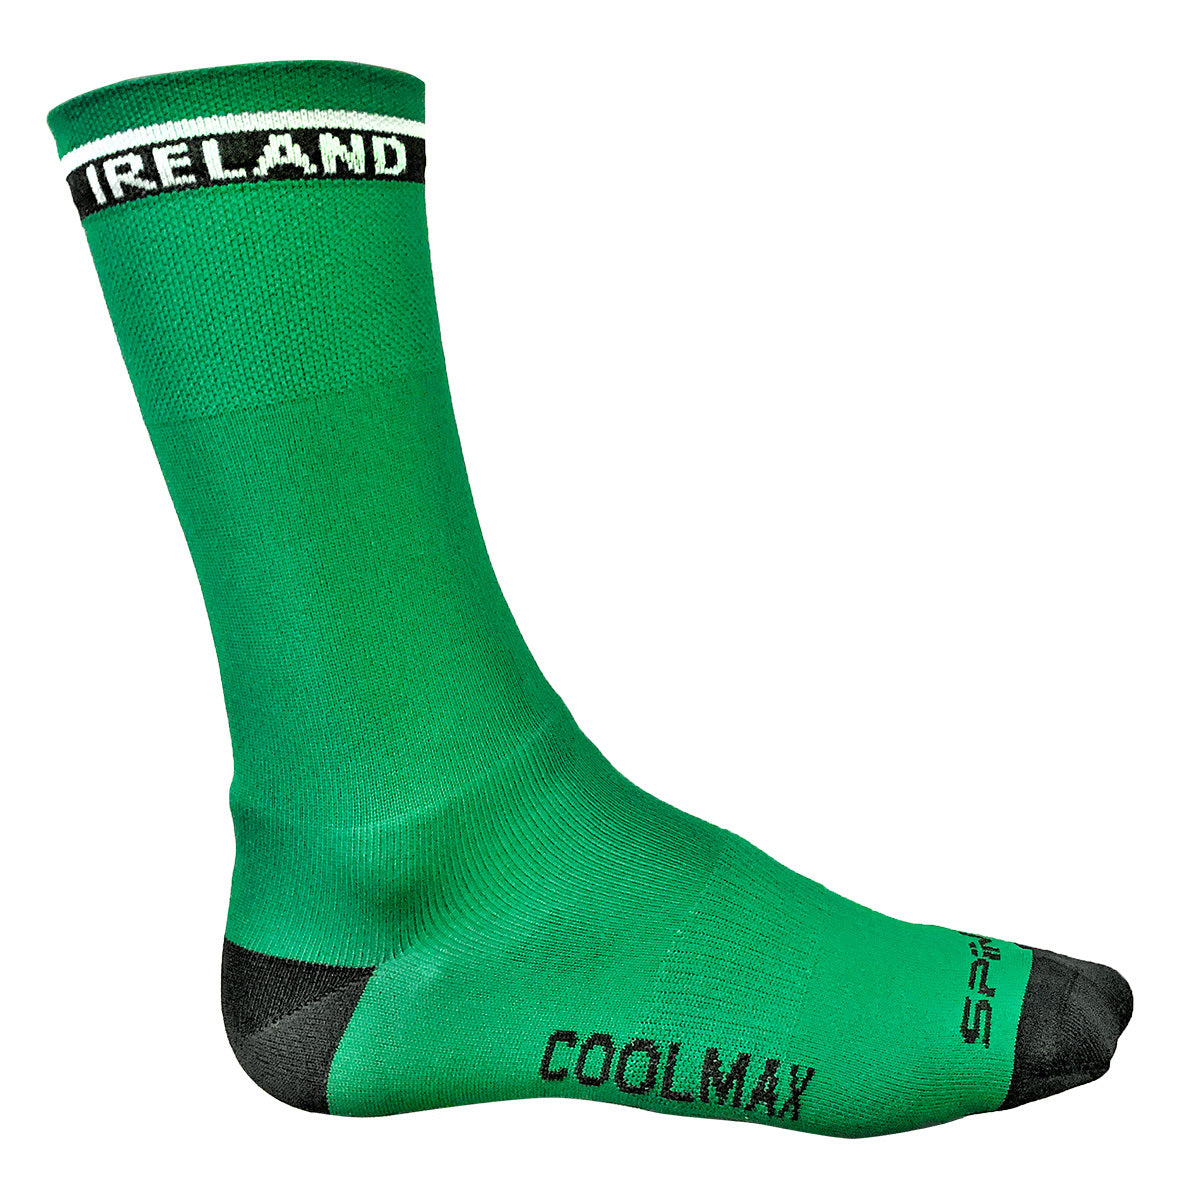 Official Team Ireland Cycling Socks